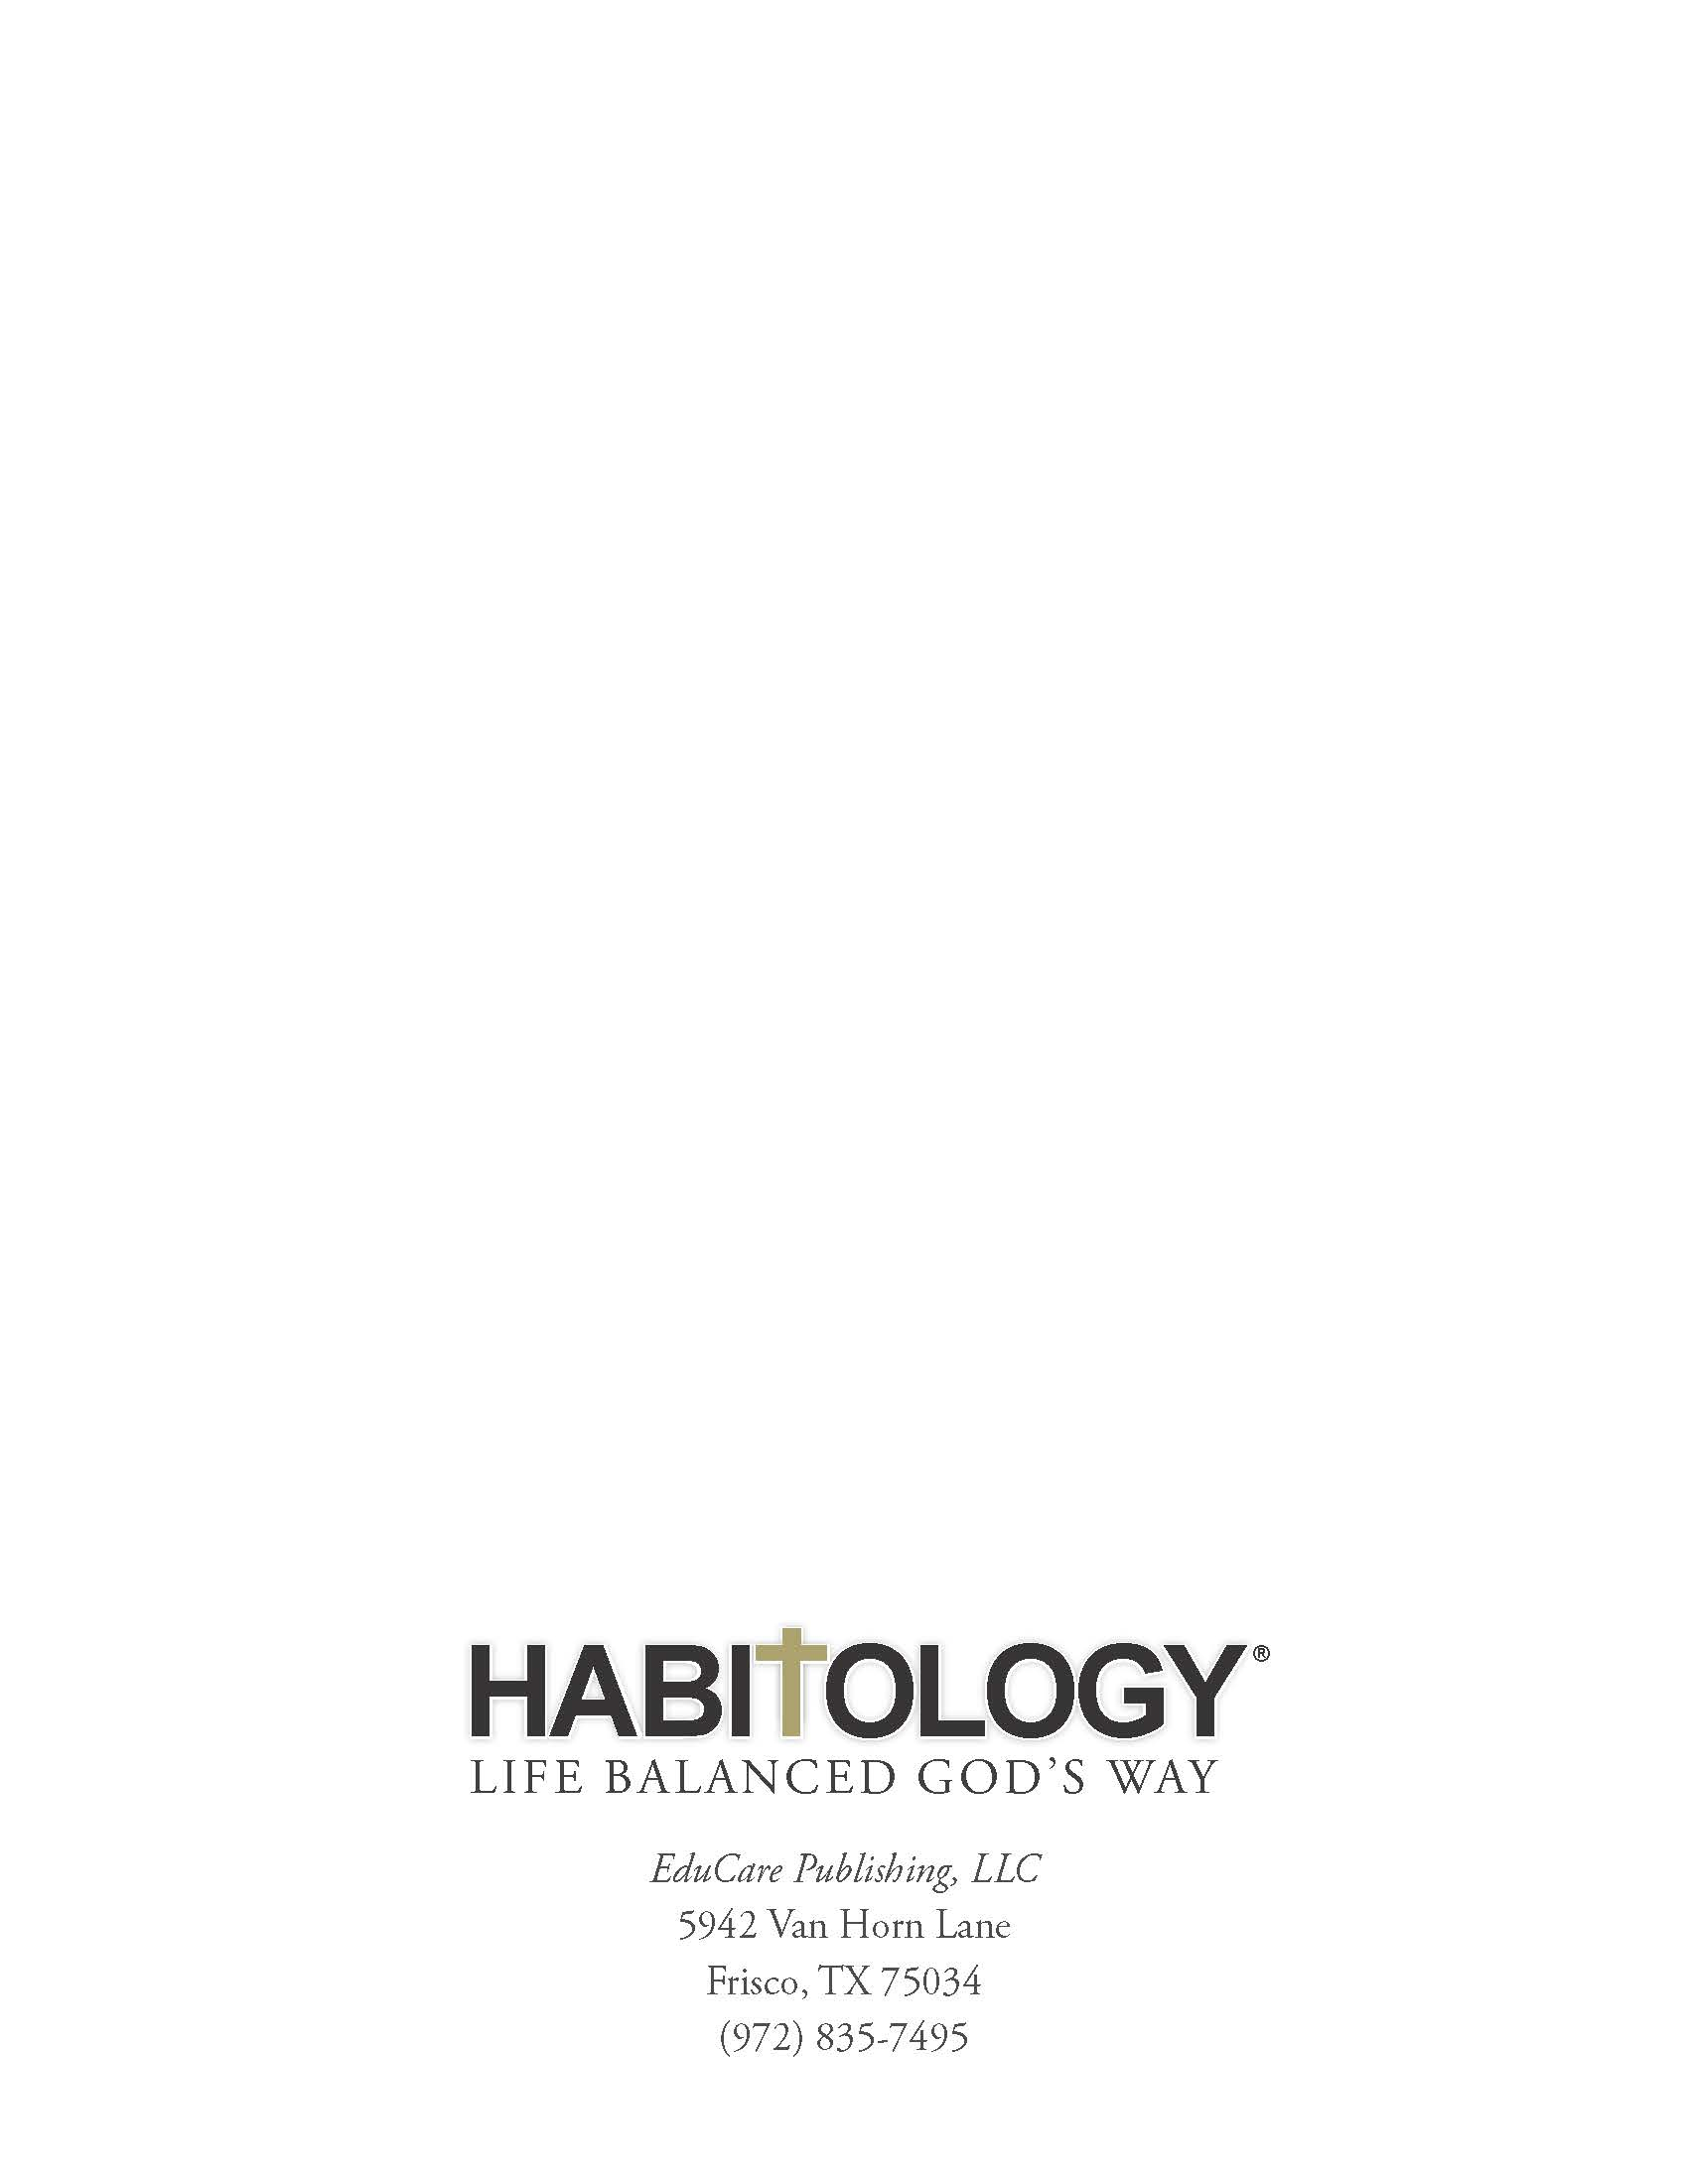 Habitology 7 Habits for Setting and Achieving Godly Goals, V7, 06-27-17 Page 74